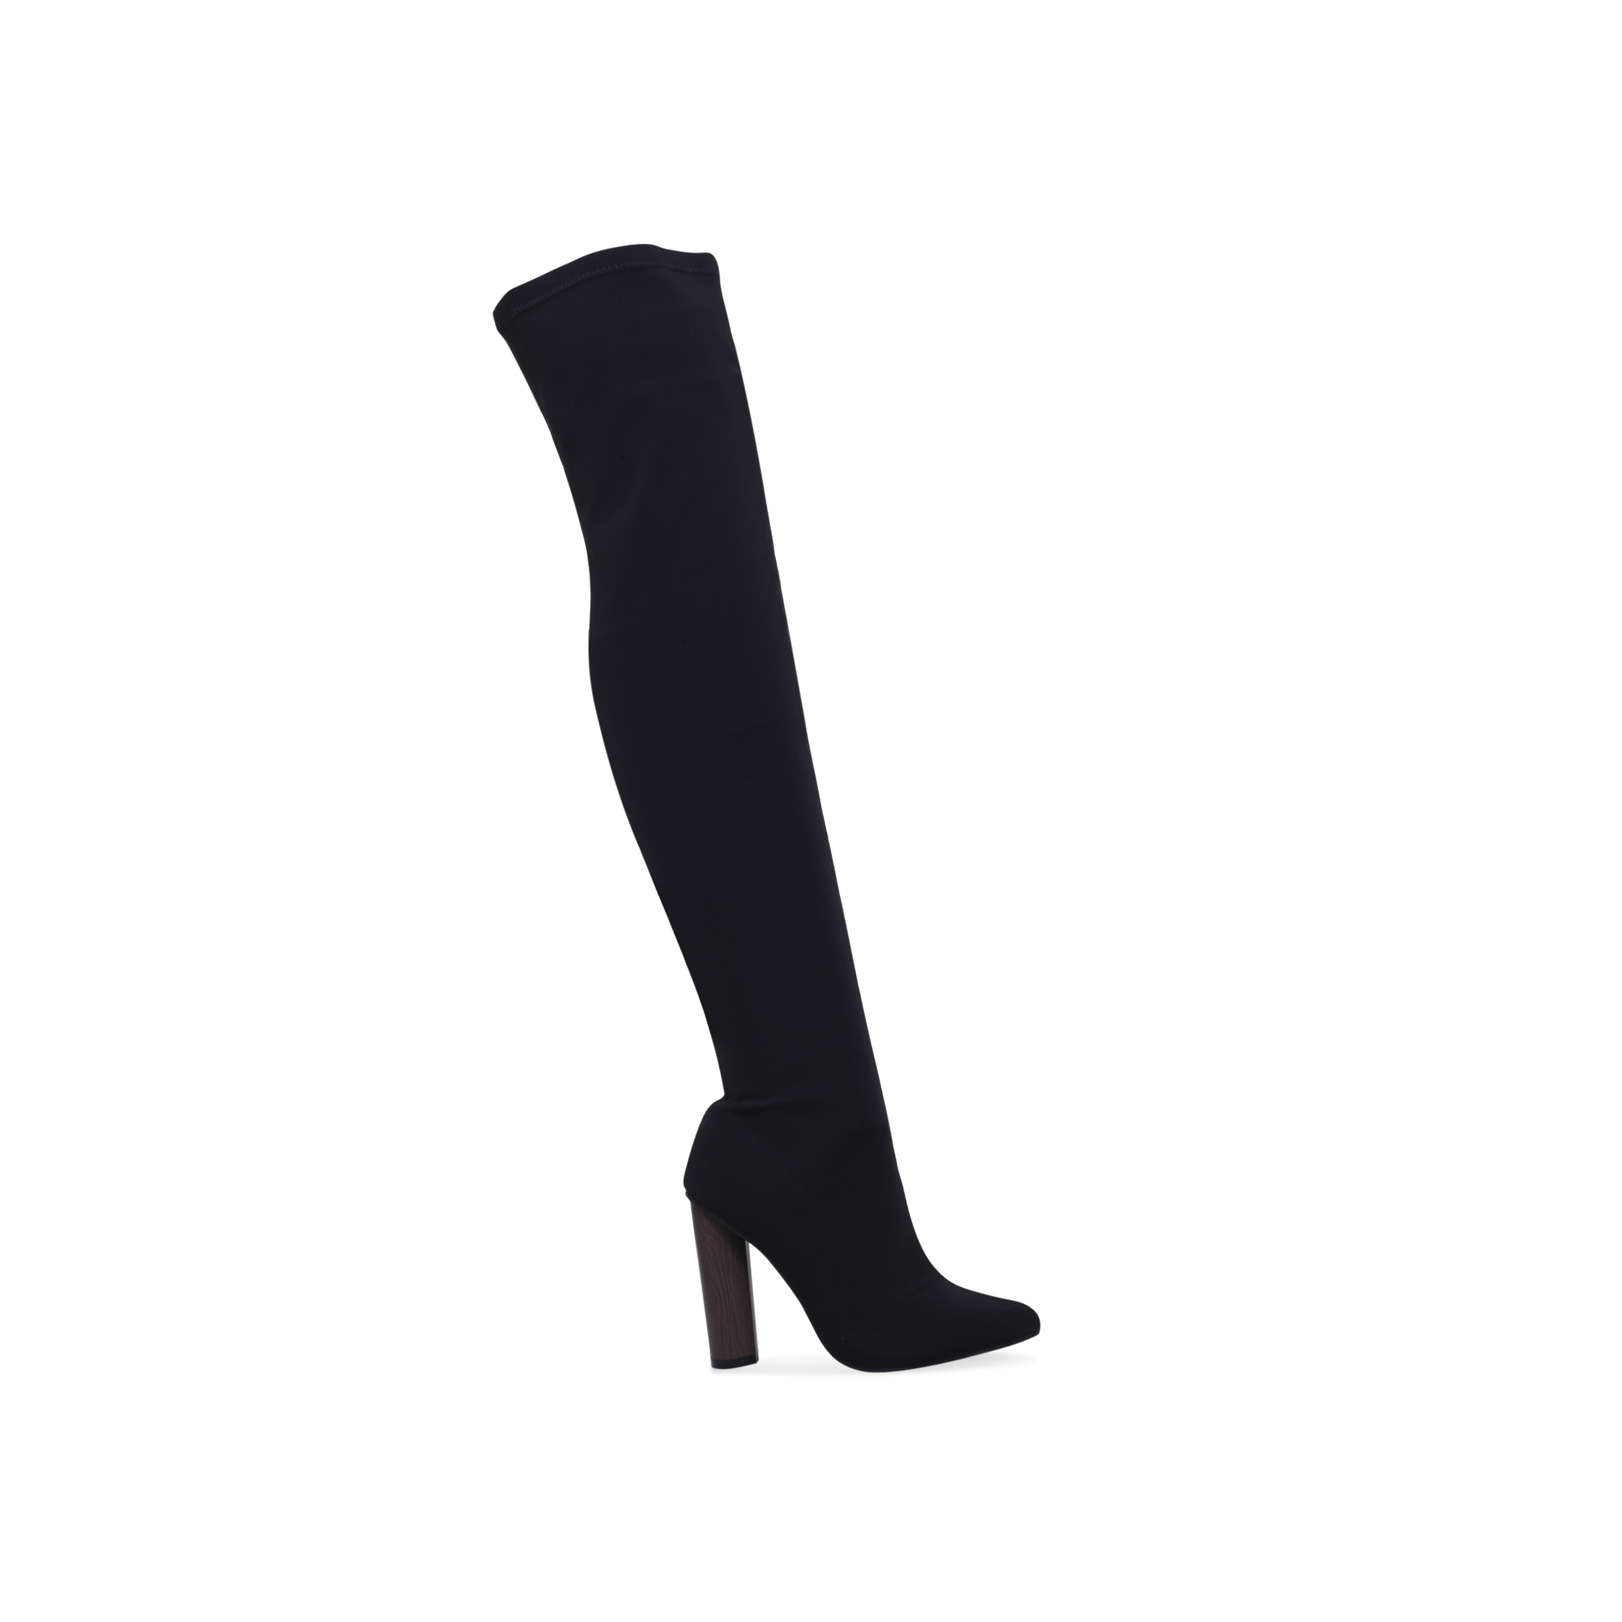 1a7a15658750 WHAM Truffle Collection Wham Black High Leg Boots Heel Over The Knee Boot  by TRUFFLE COLLECTION